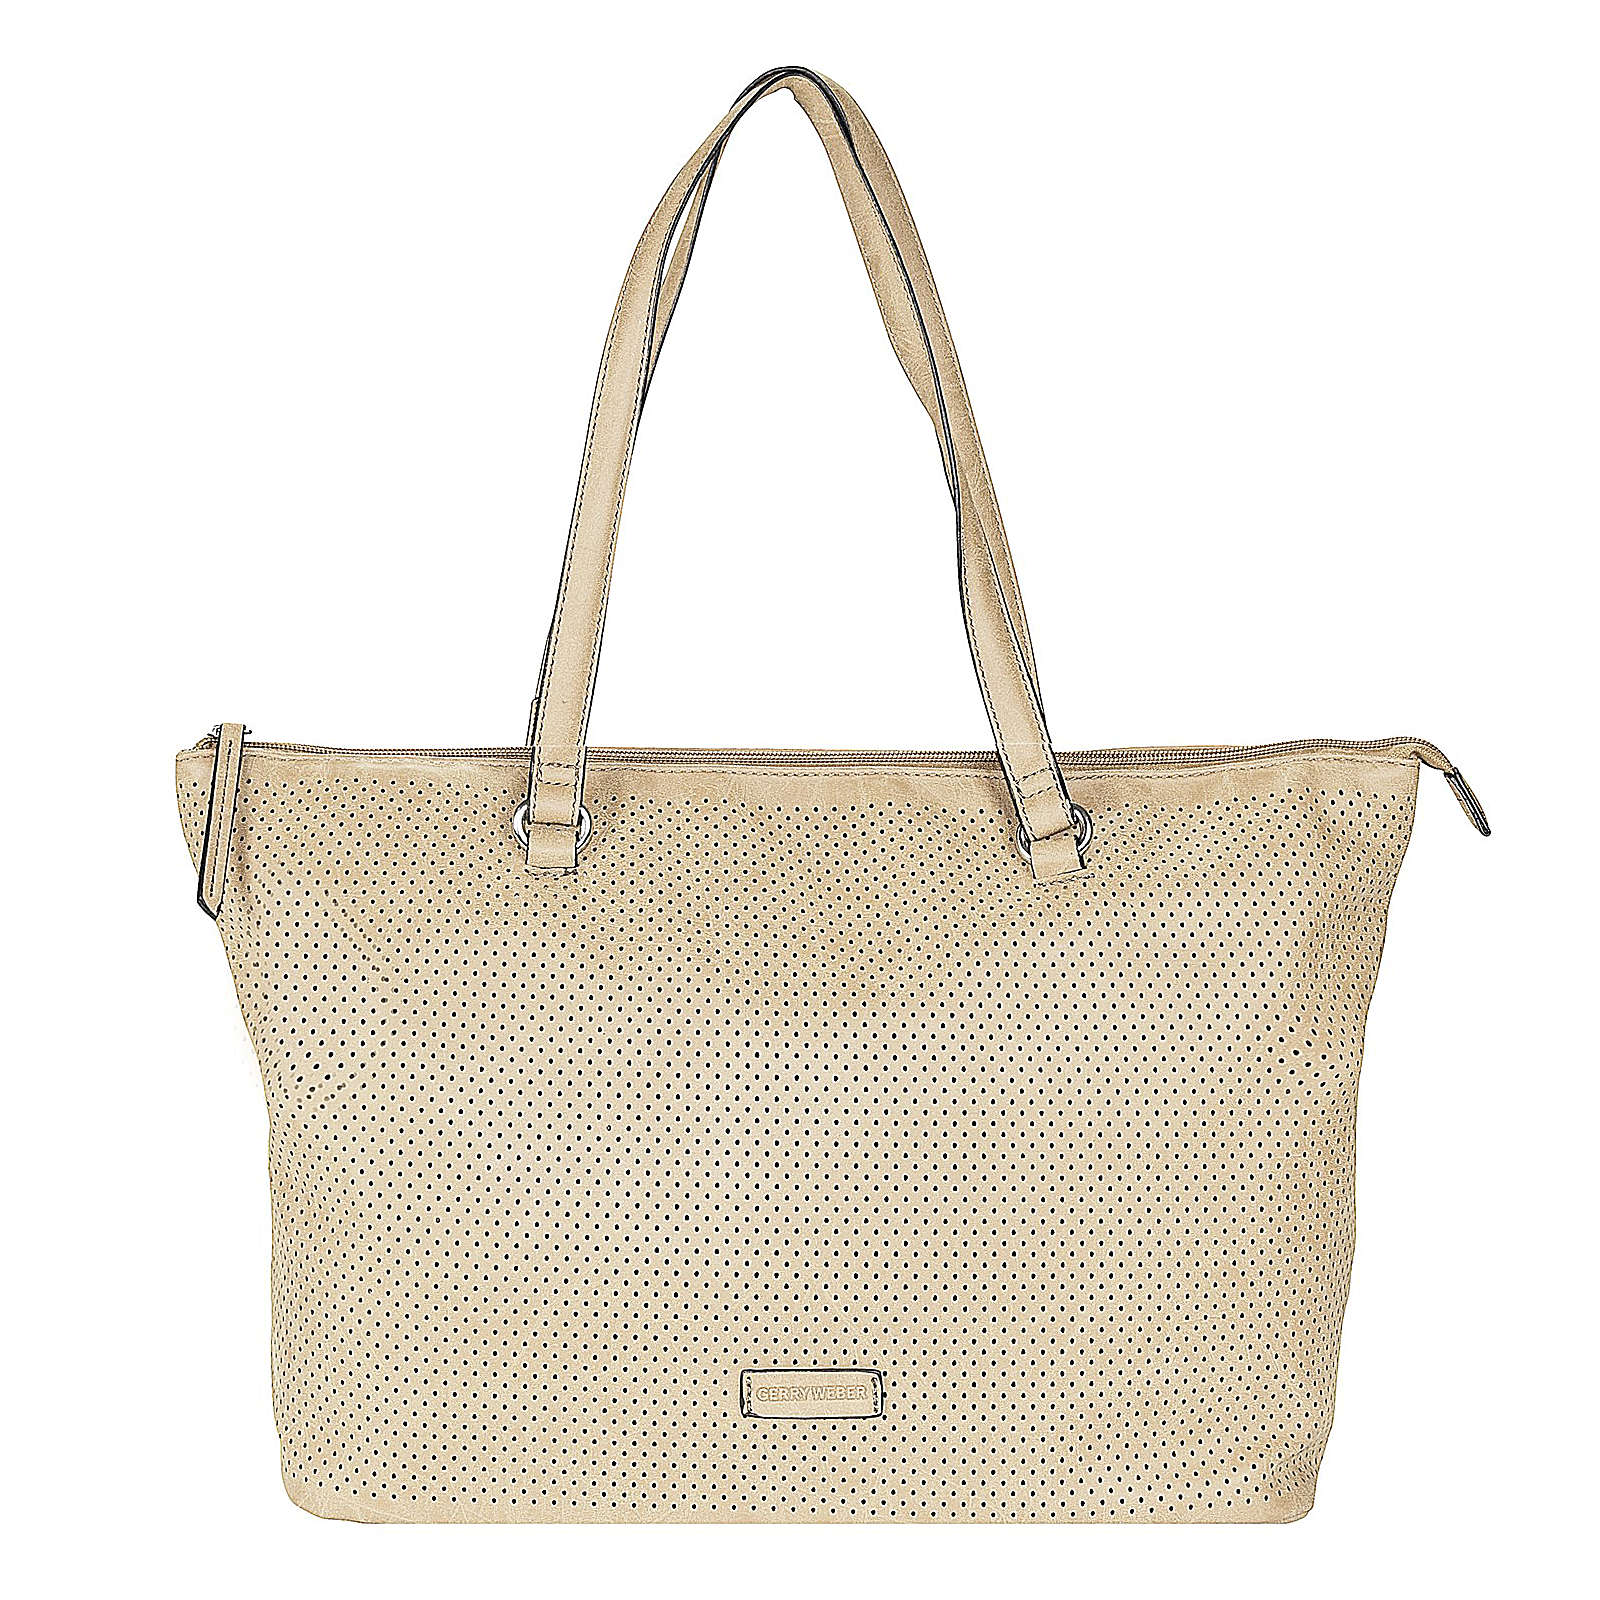 Team Spirit Shopper Tasche 36 cm Gerry Weber taupe - broschei